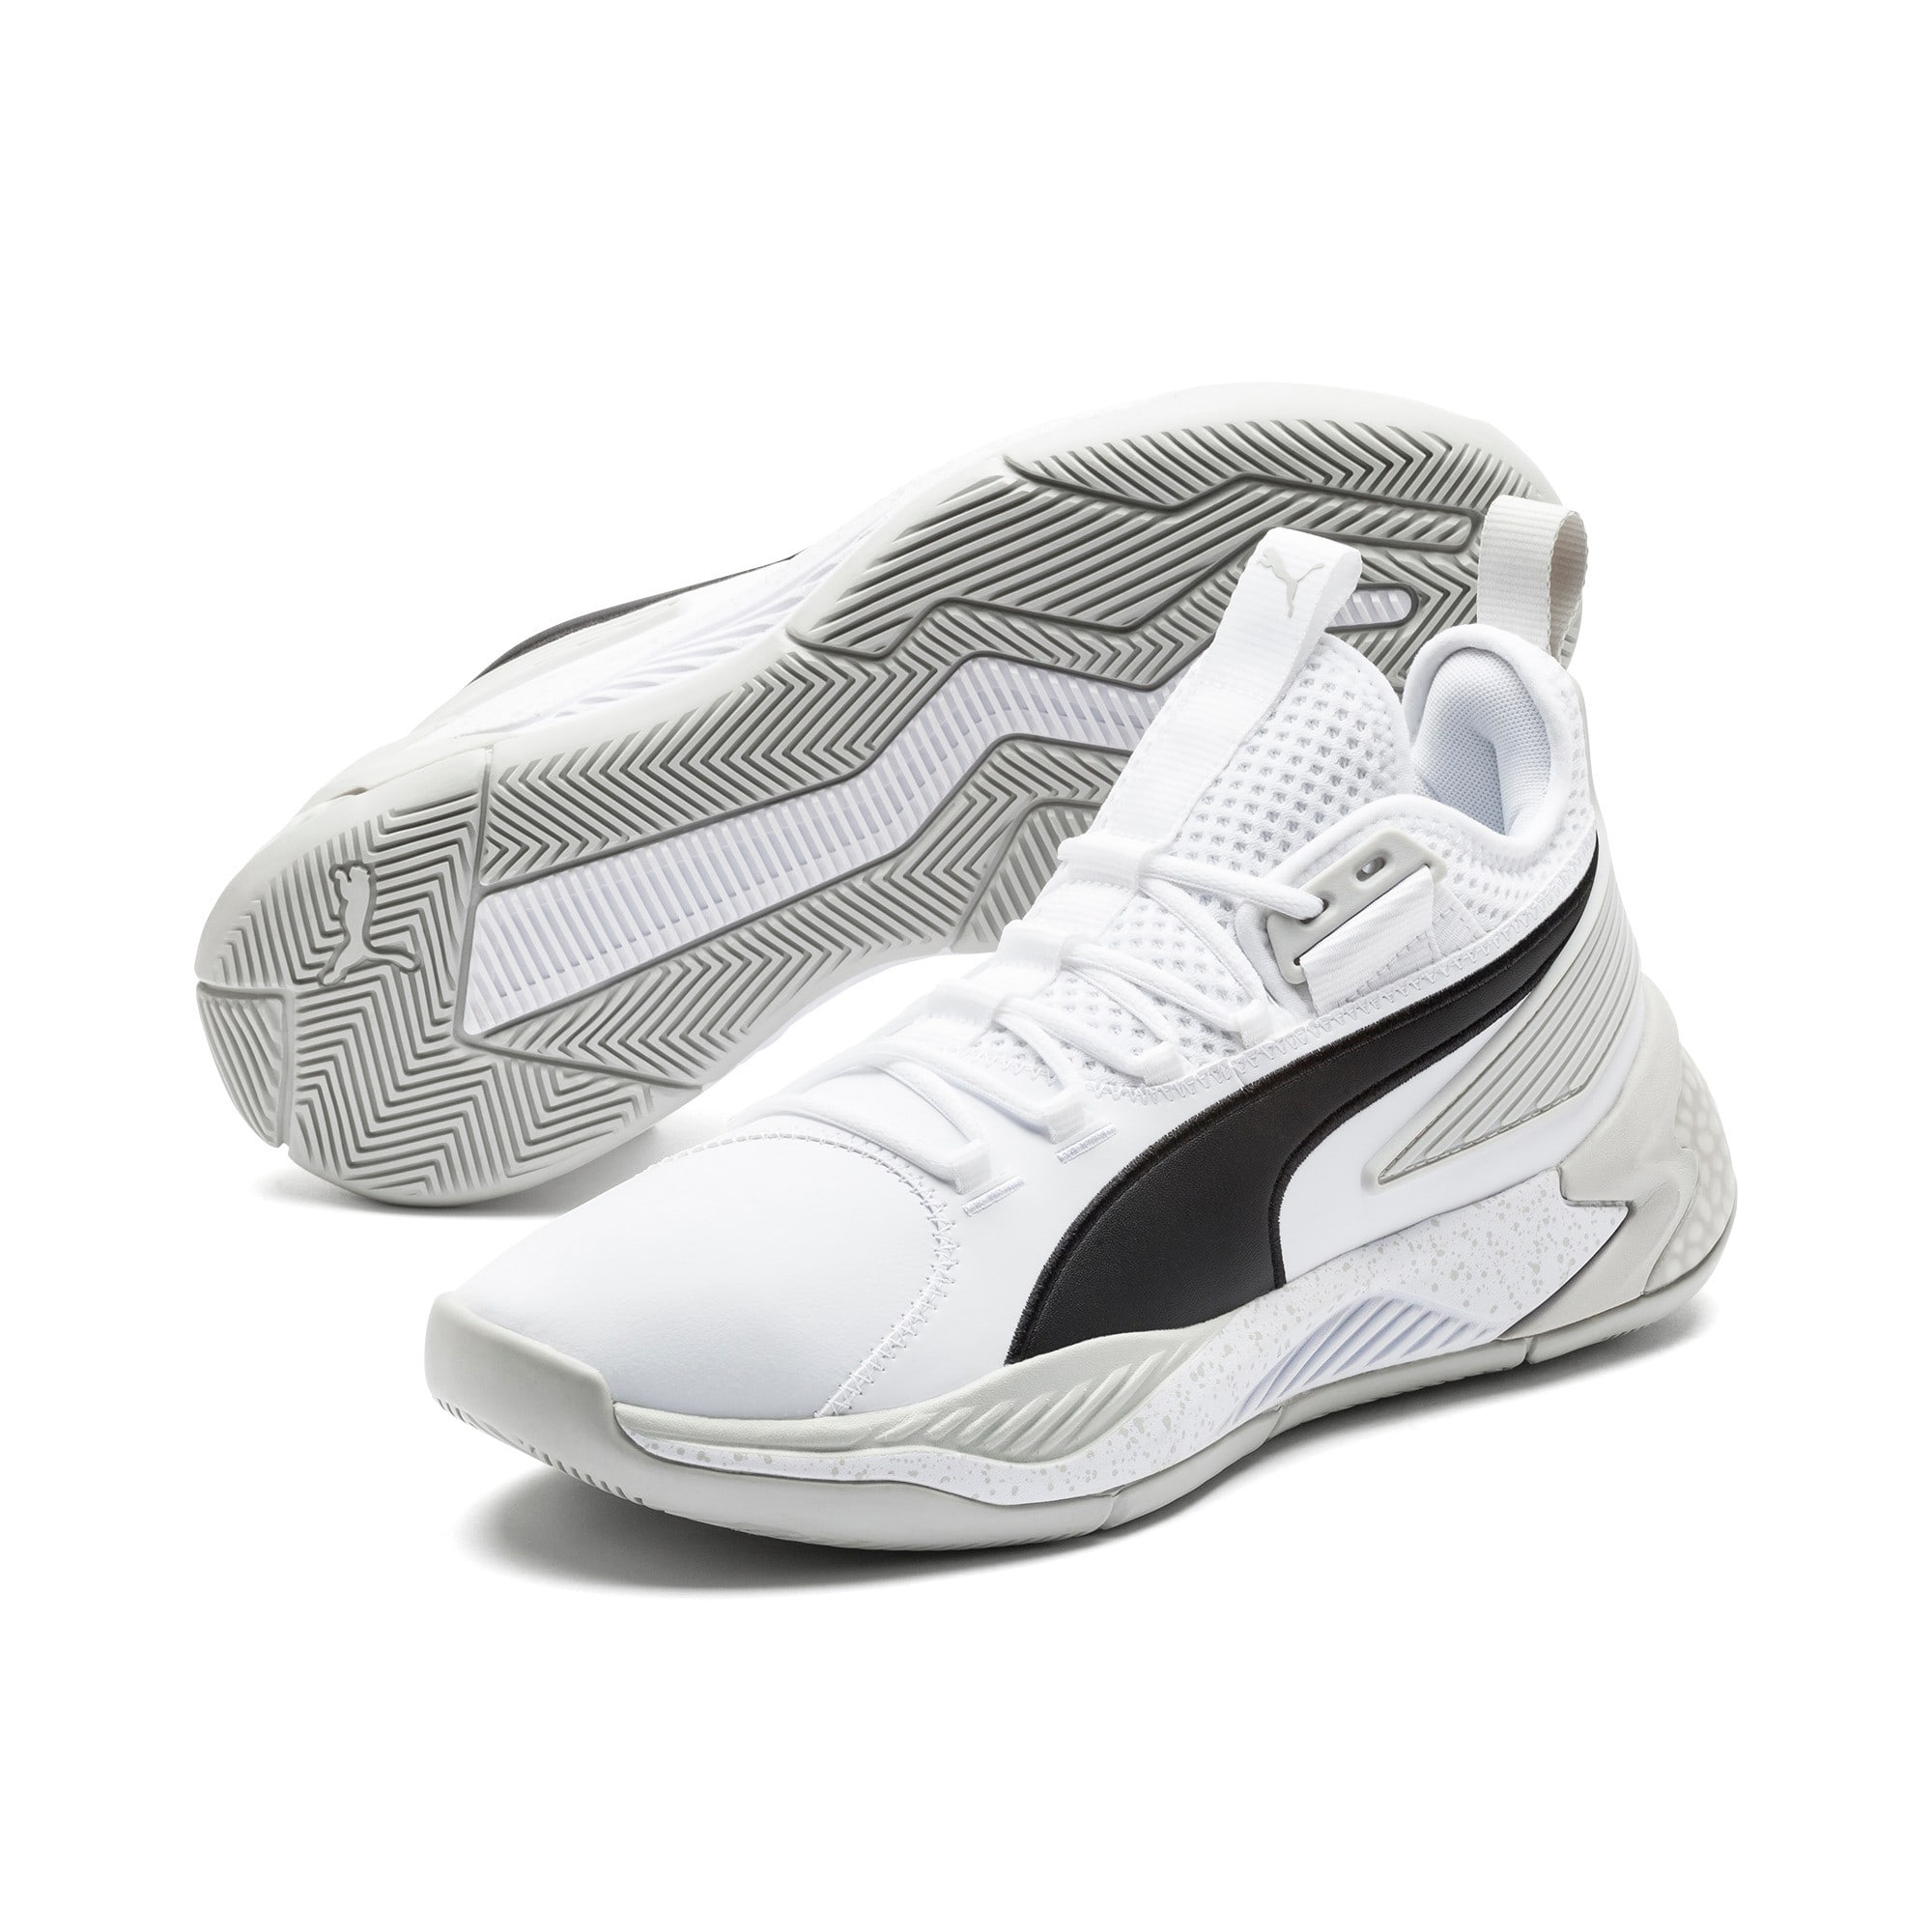 Thumbnail 2 of Uproar Core Men's Basketball Shoes, Puma White-Glacier Gray, medium